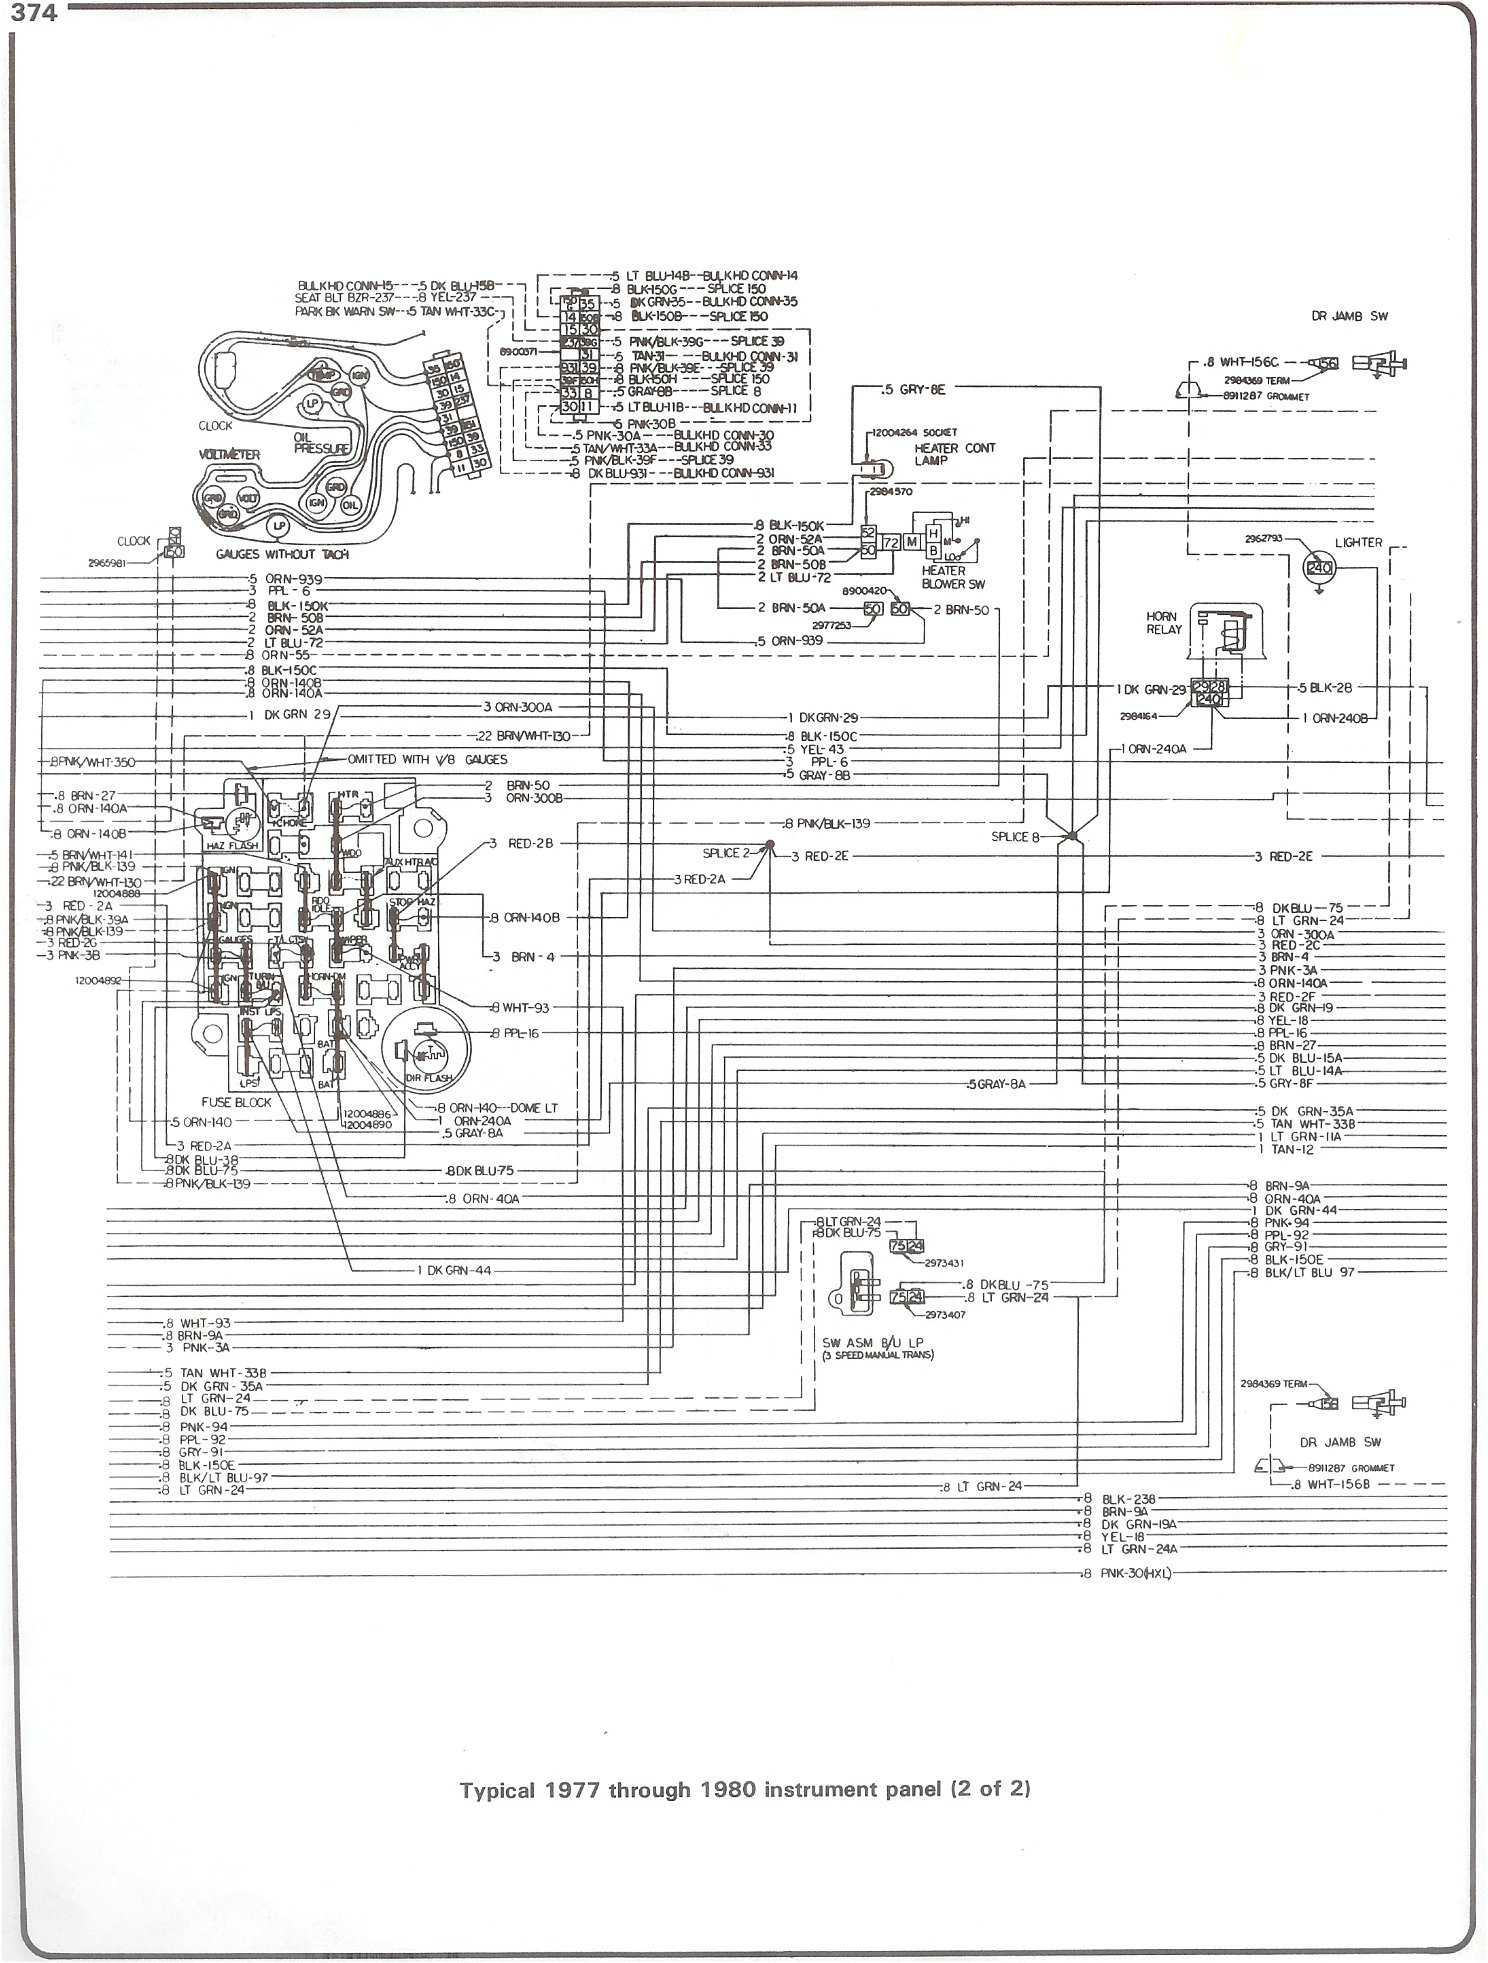 77 80_instrument_pg2 complete 73 87 wiring diagrams 1988 GMC Sierra 1500 at panicattacktreatment.co